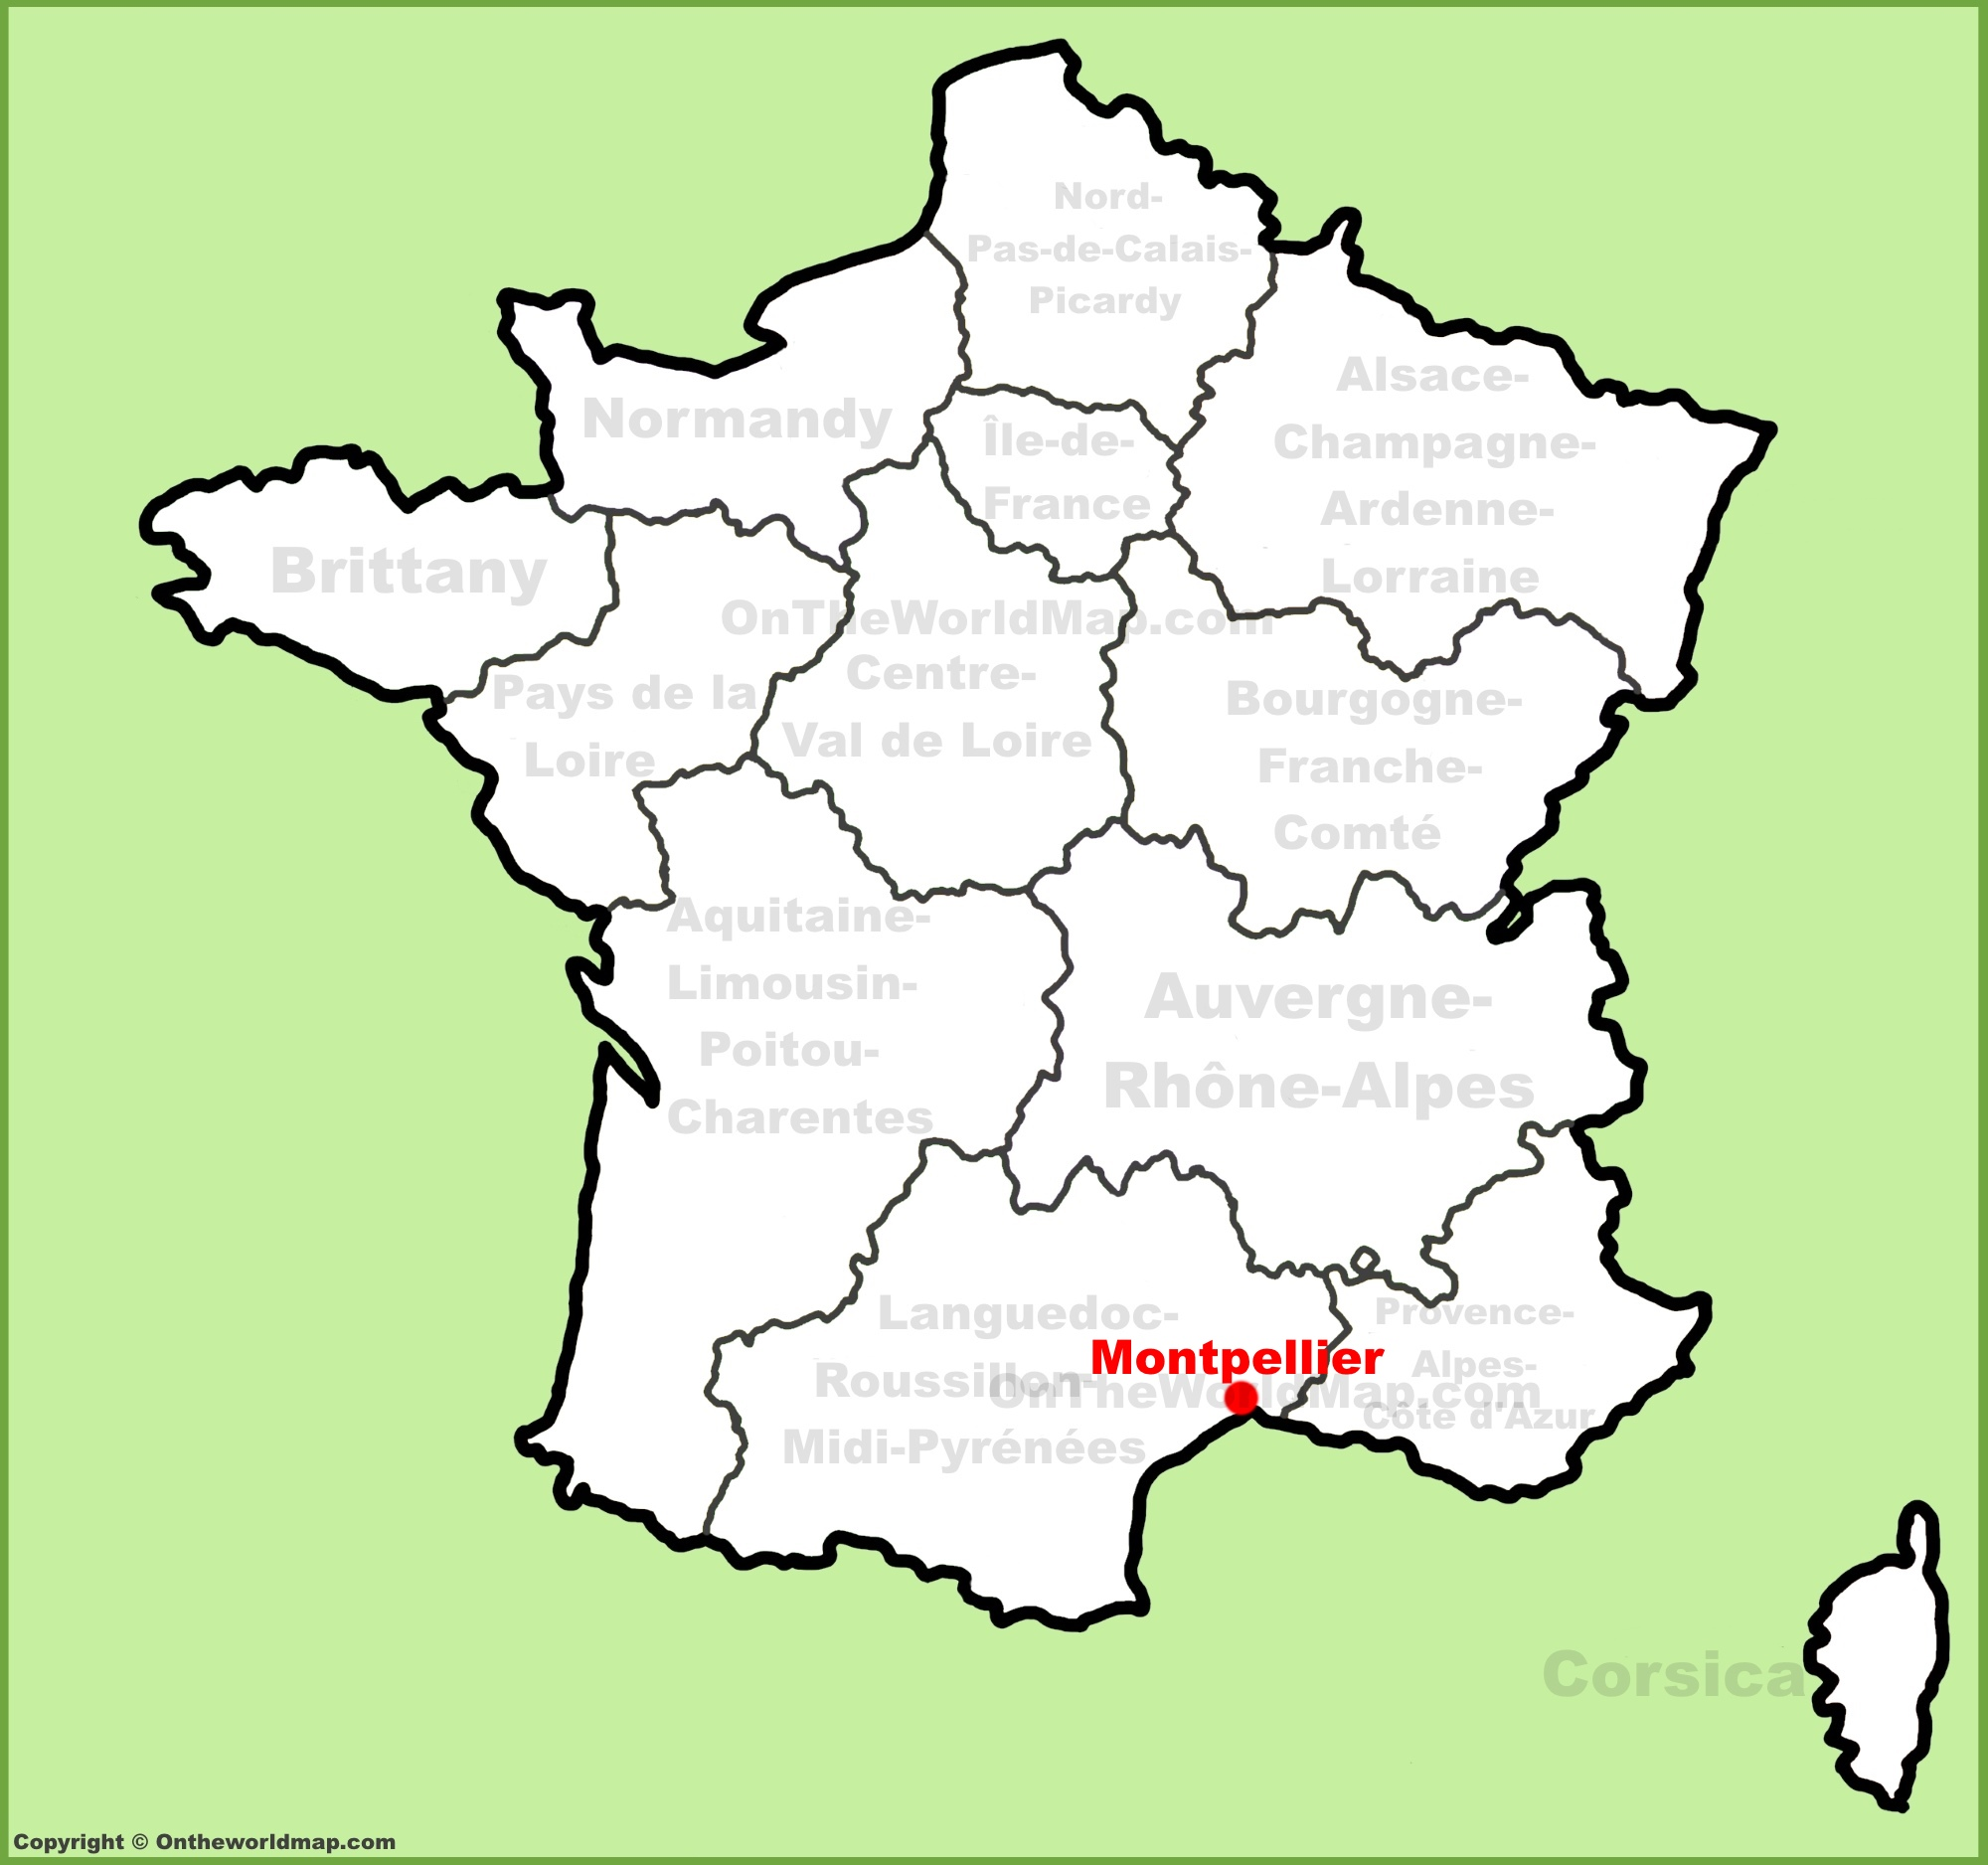 Montpellier location on the France map